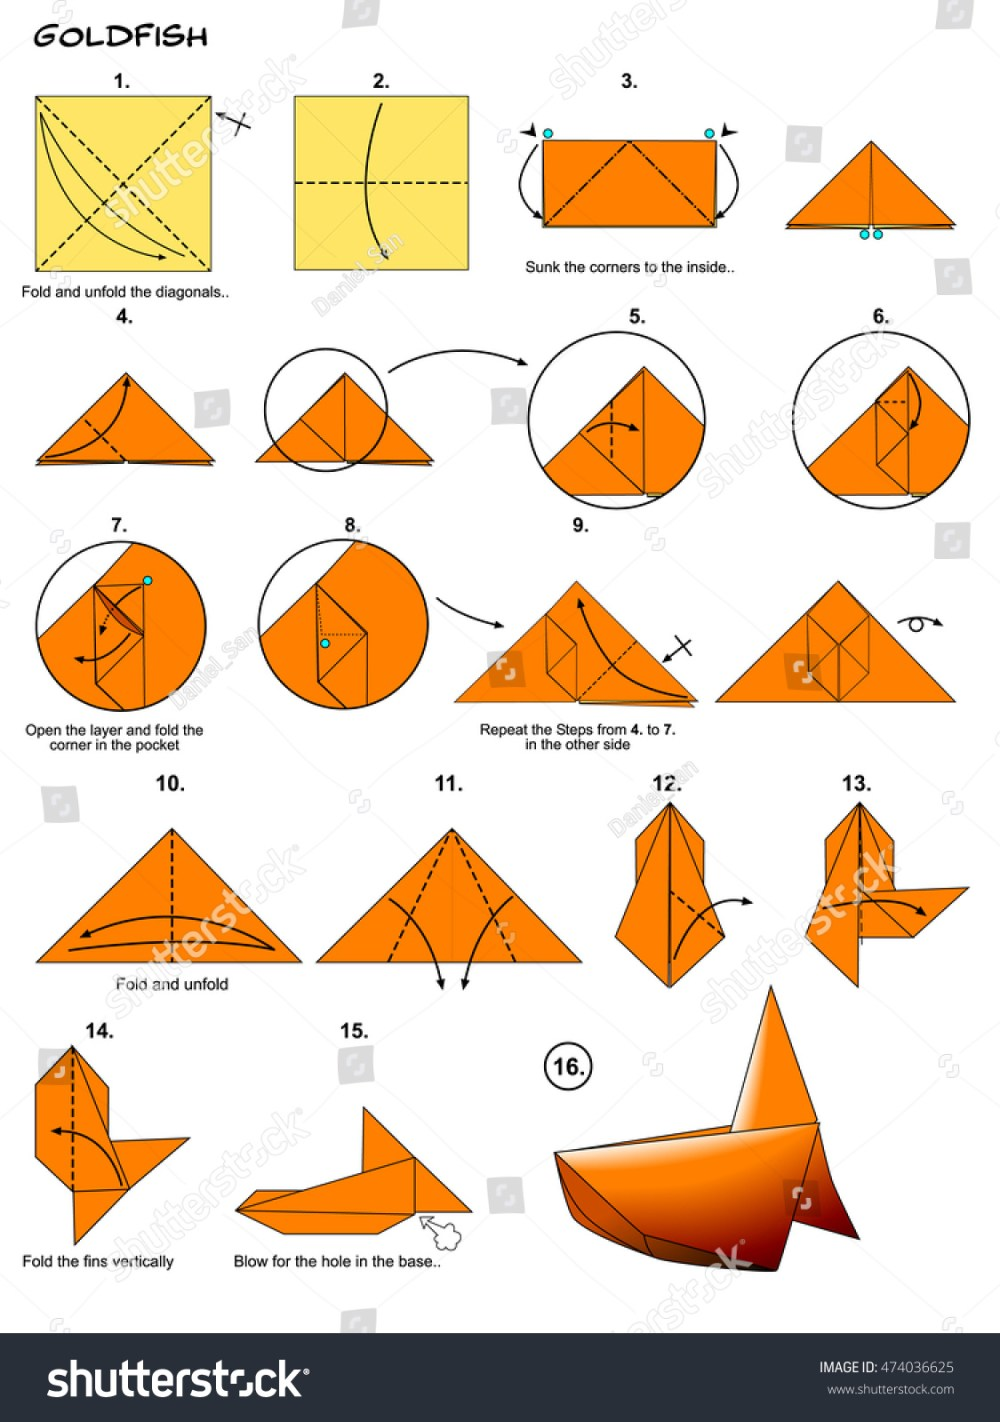 medium resolution of origami sea animal fish goldfish diagram instructions steps